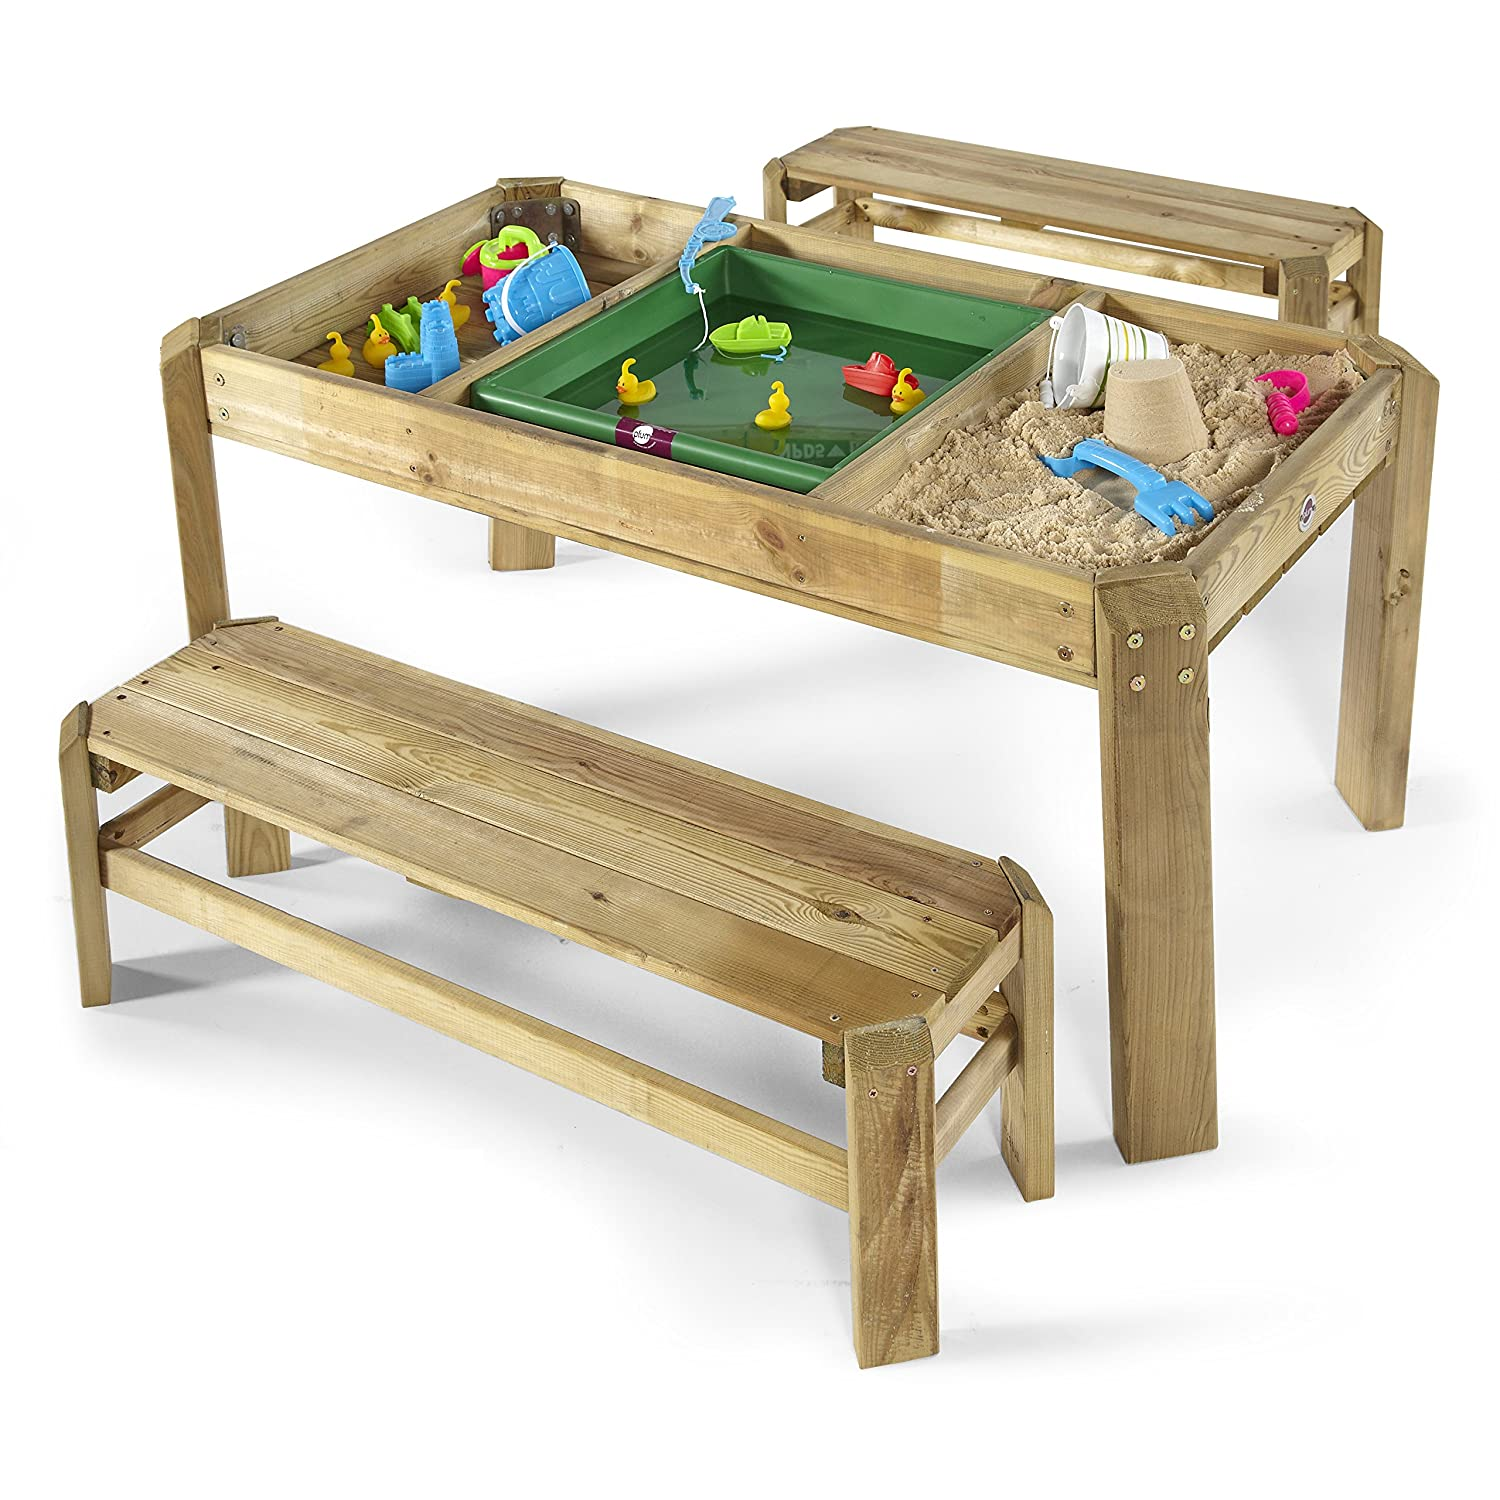 plum premium wooden activity table with benches amazoncouk  - plum premium wooden activity table with benches amazoncouk toys  games